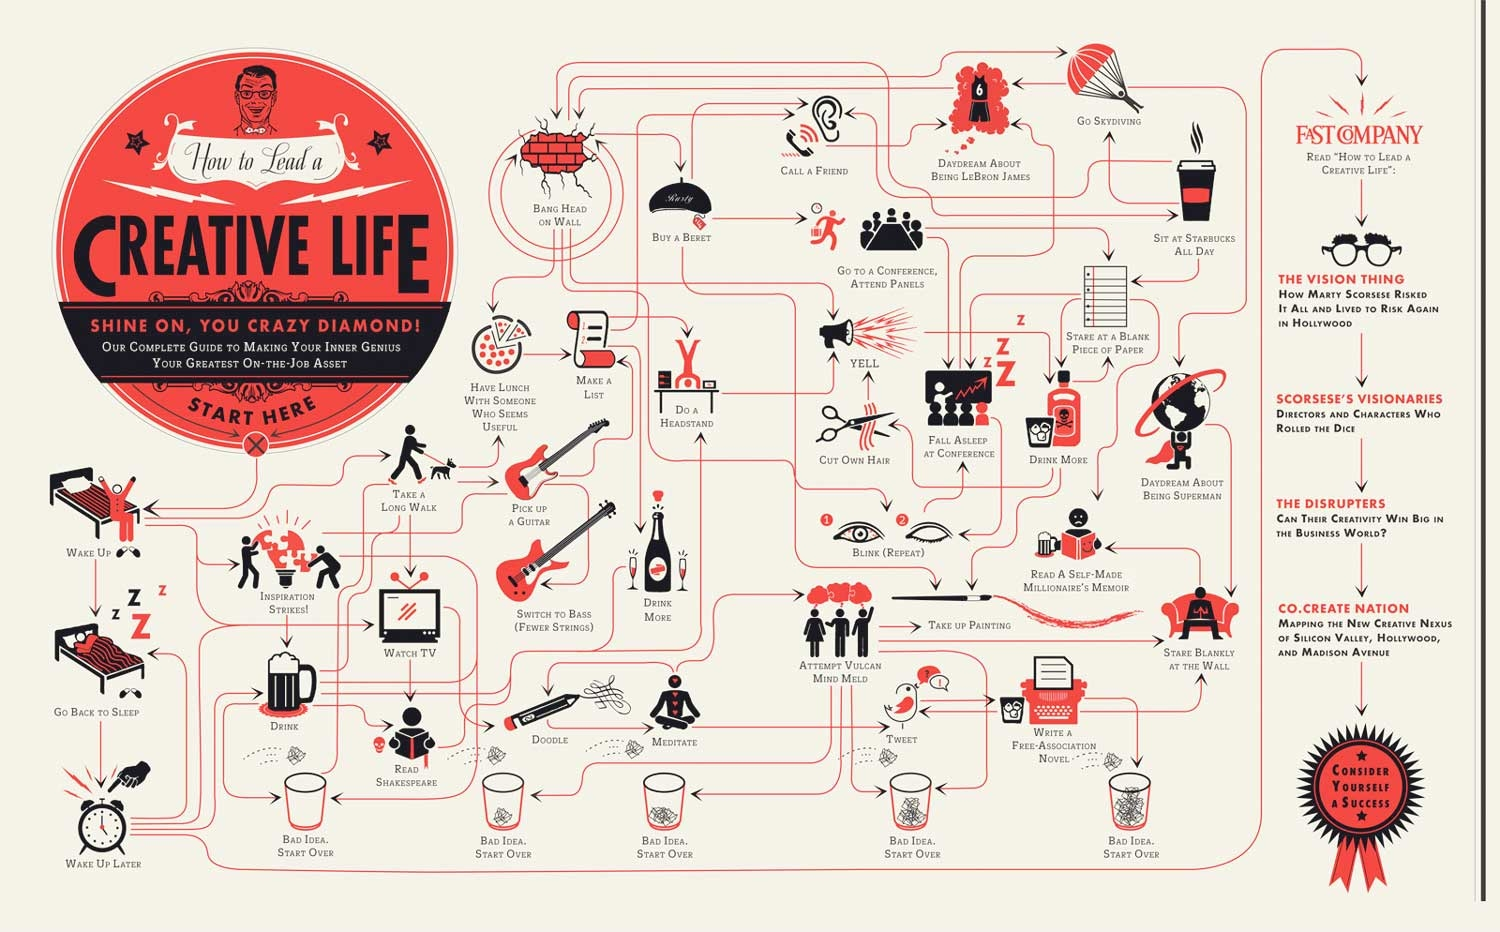 Fromhttp://www.fastcompany.com/1793515/how-lead-creative-life